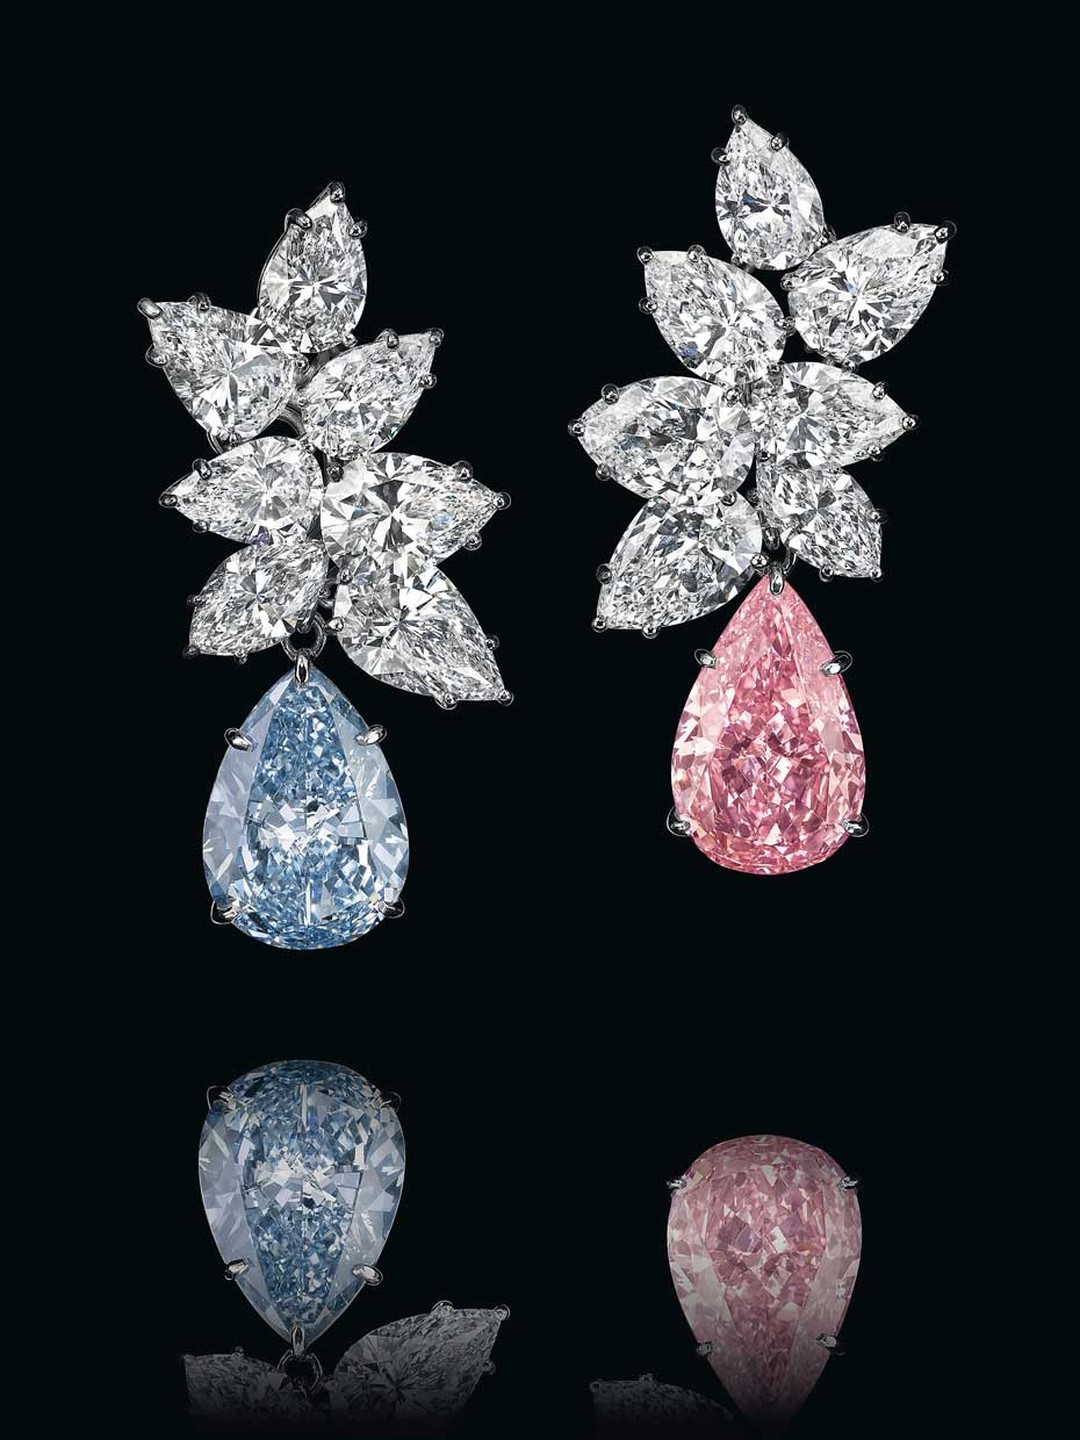 These coloured diamond ear pendants fetched a final price of $15.82m at Christie's auction house in Geneva in 2014.